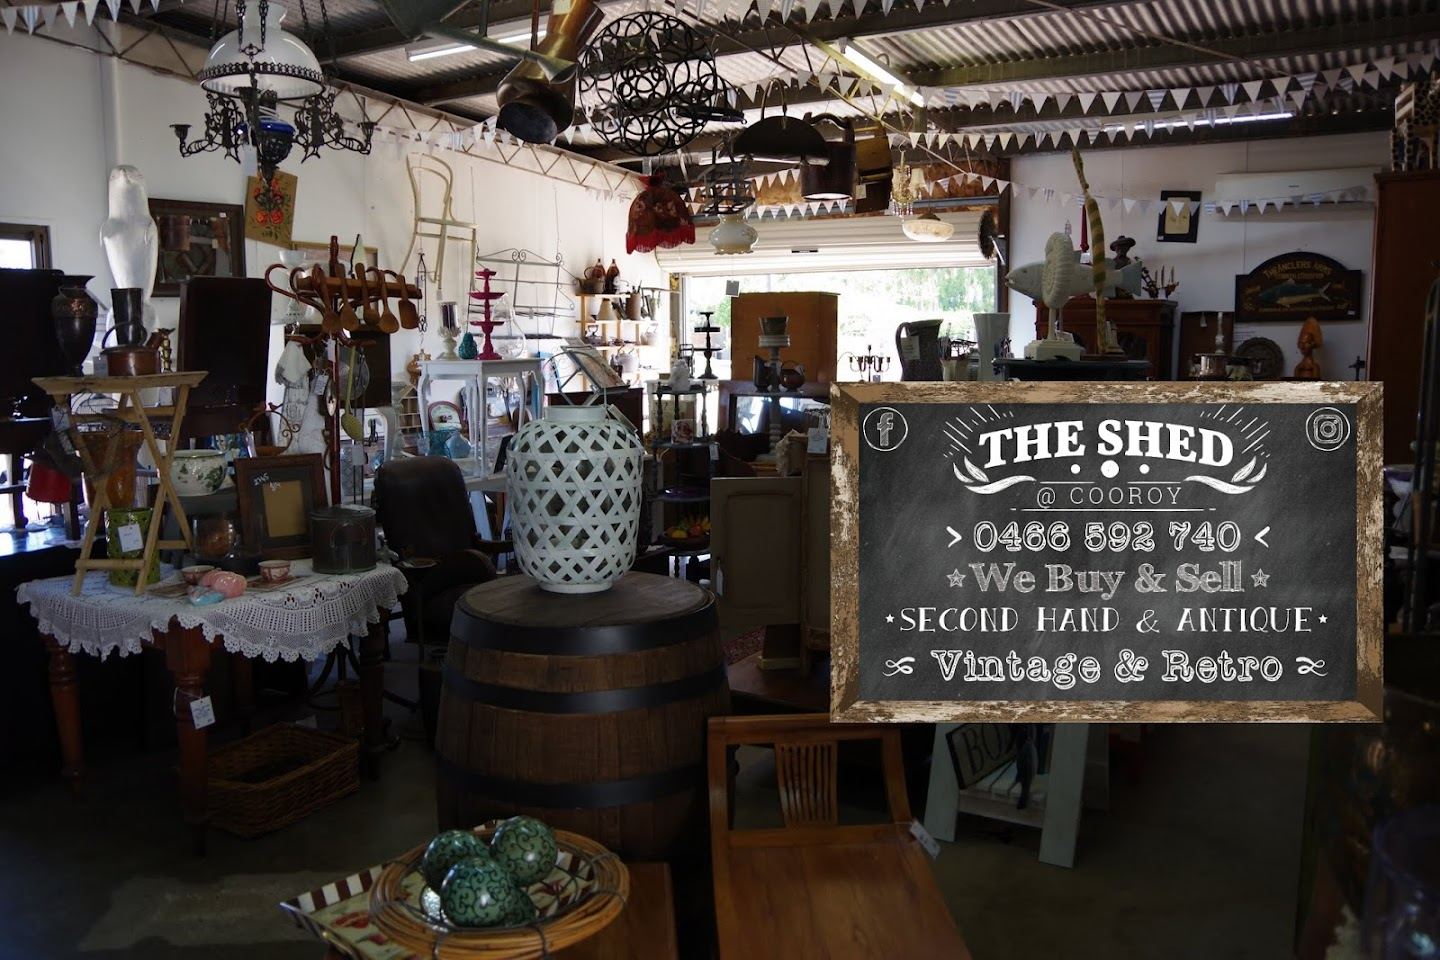 Second Hand Furniture Sydney Pick Up The Shed Cooroy Antiques Vintage Secondhand Shop In Cooroy